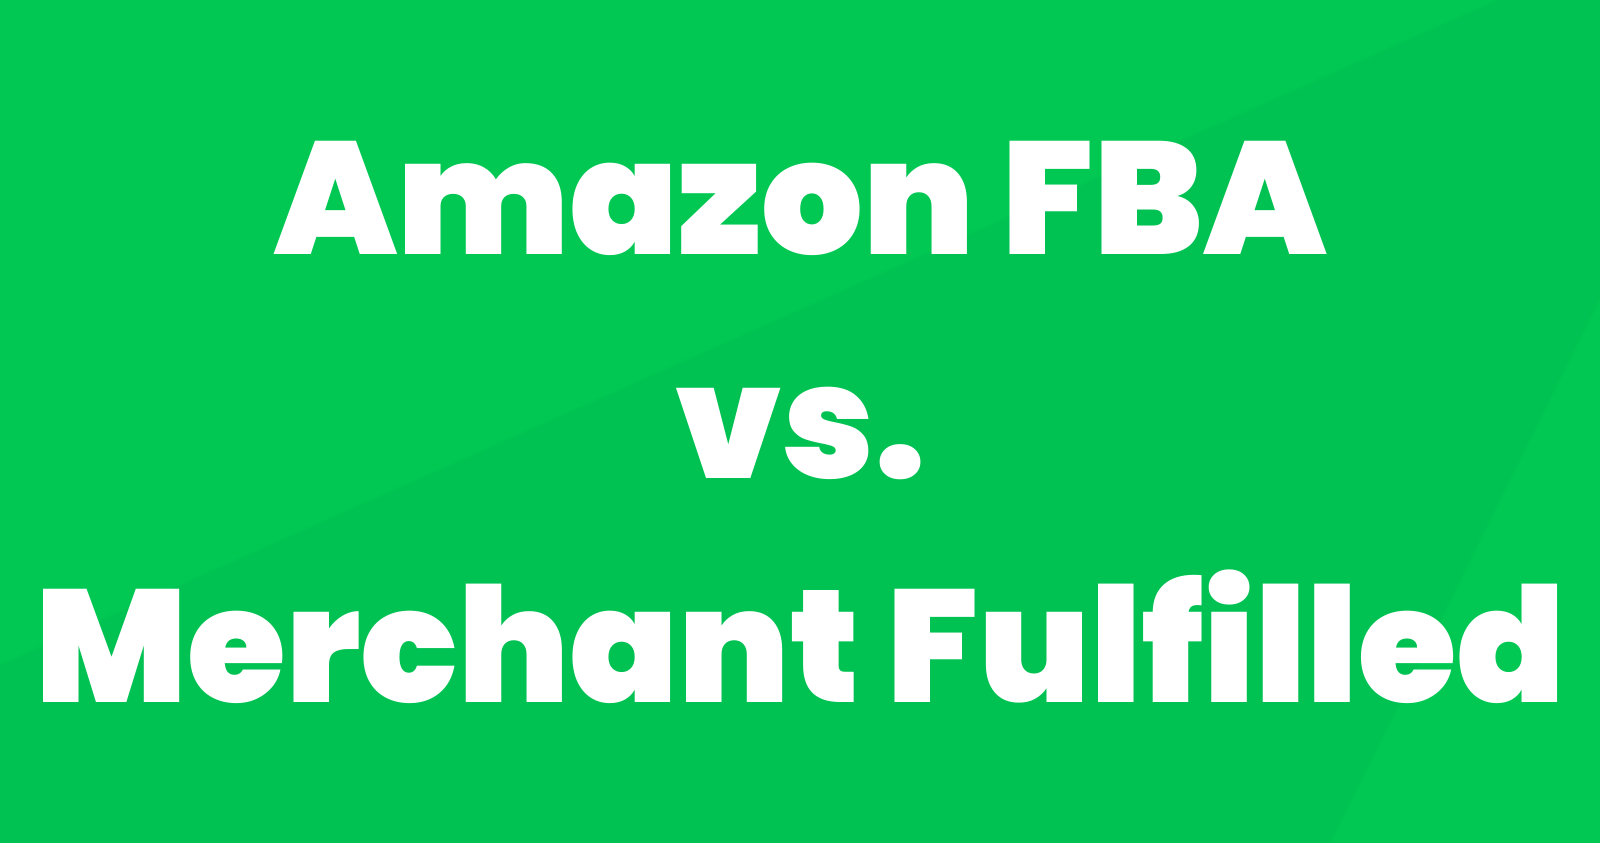 Amazon FBA vs. Merchant Fulfilled: Which One Works Best for You?